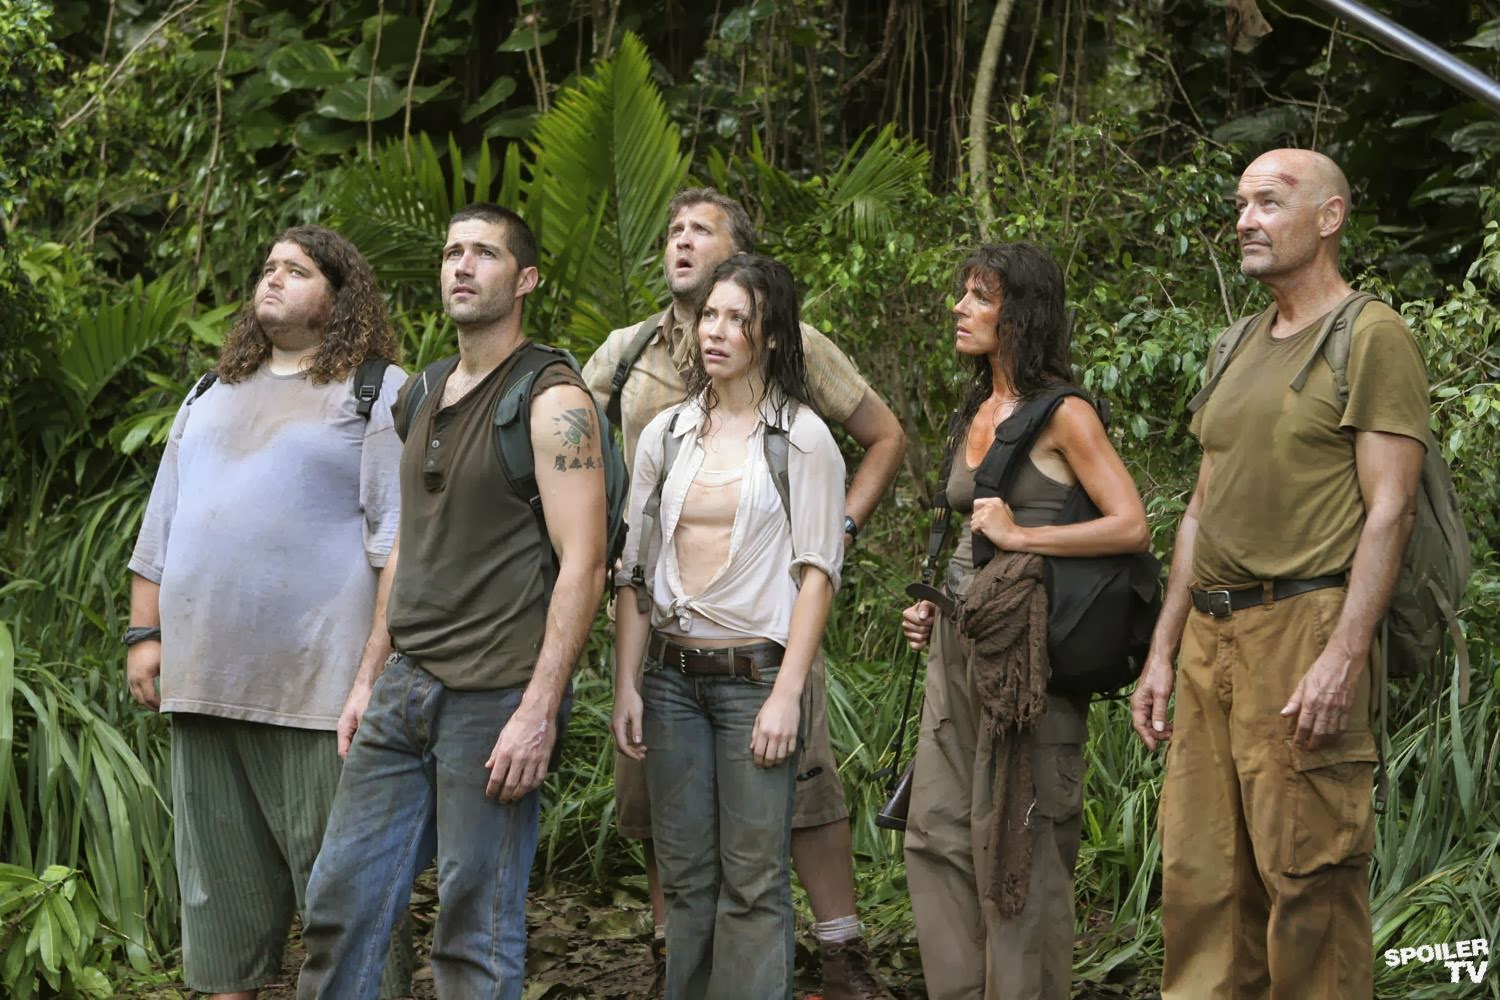 Lost season 6 episode 15 review - Author of wild movie